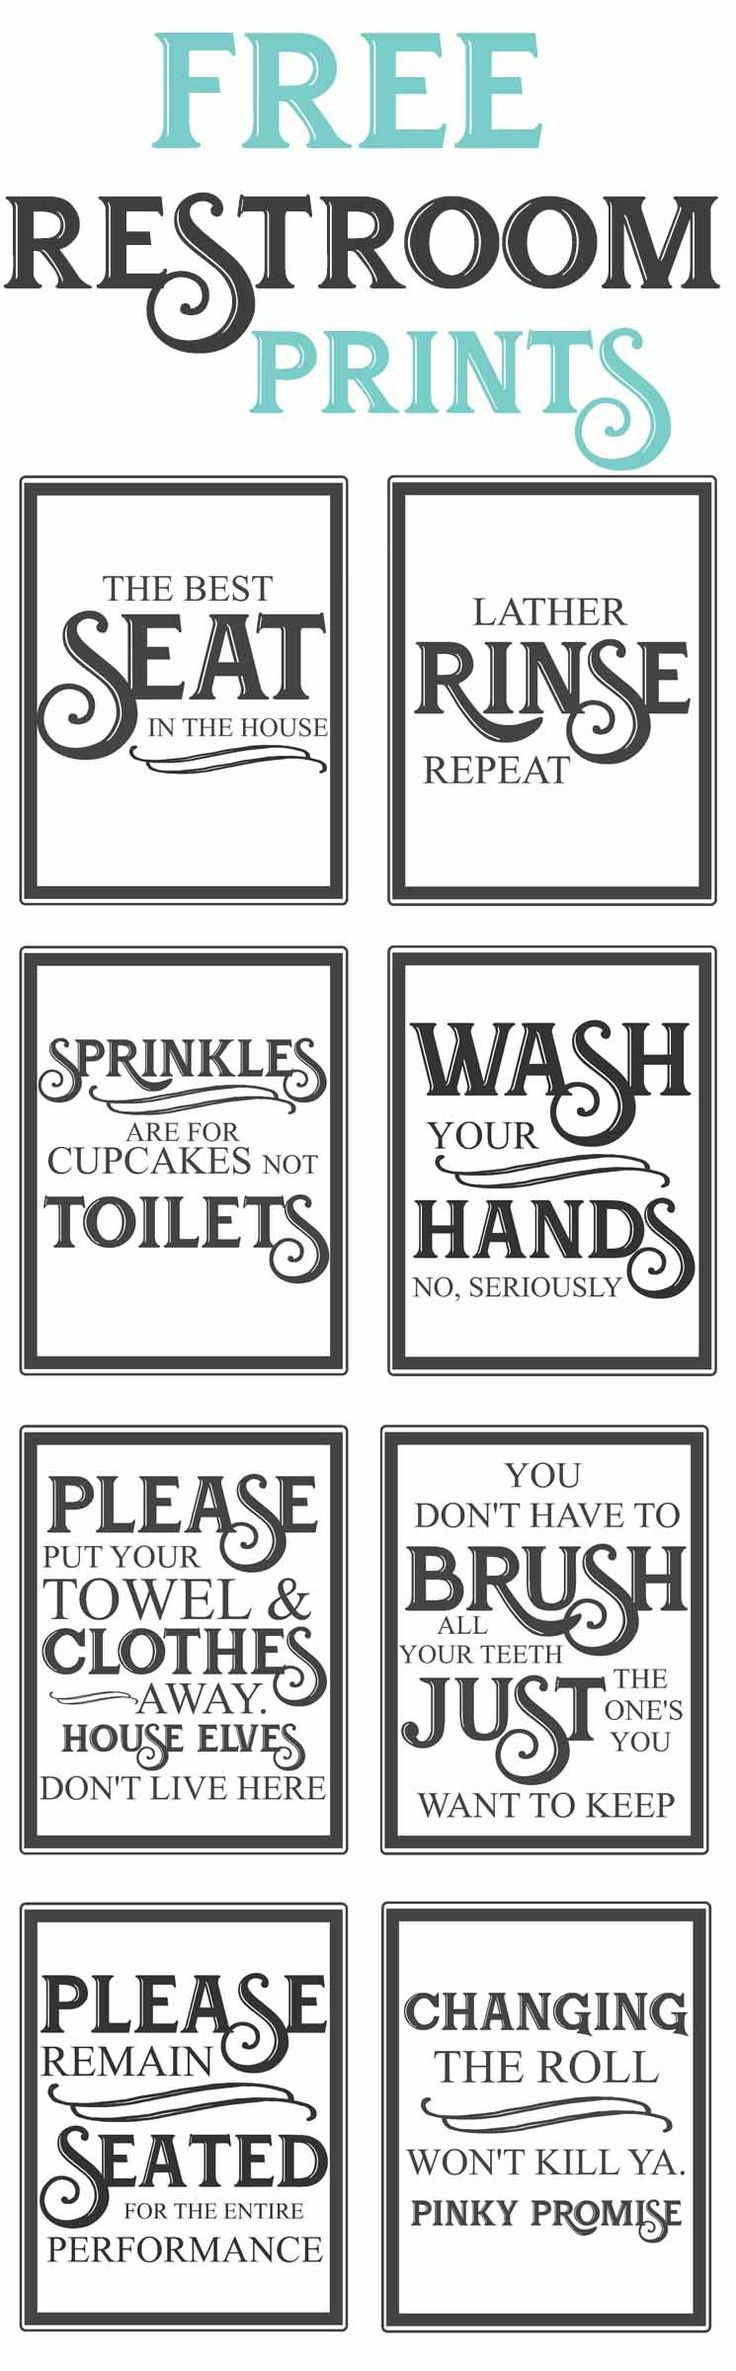 Free Vintage Bathroom Printables | Farmhouse | Diy Home Decor, Home - Free Printable Bathroom Pictures